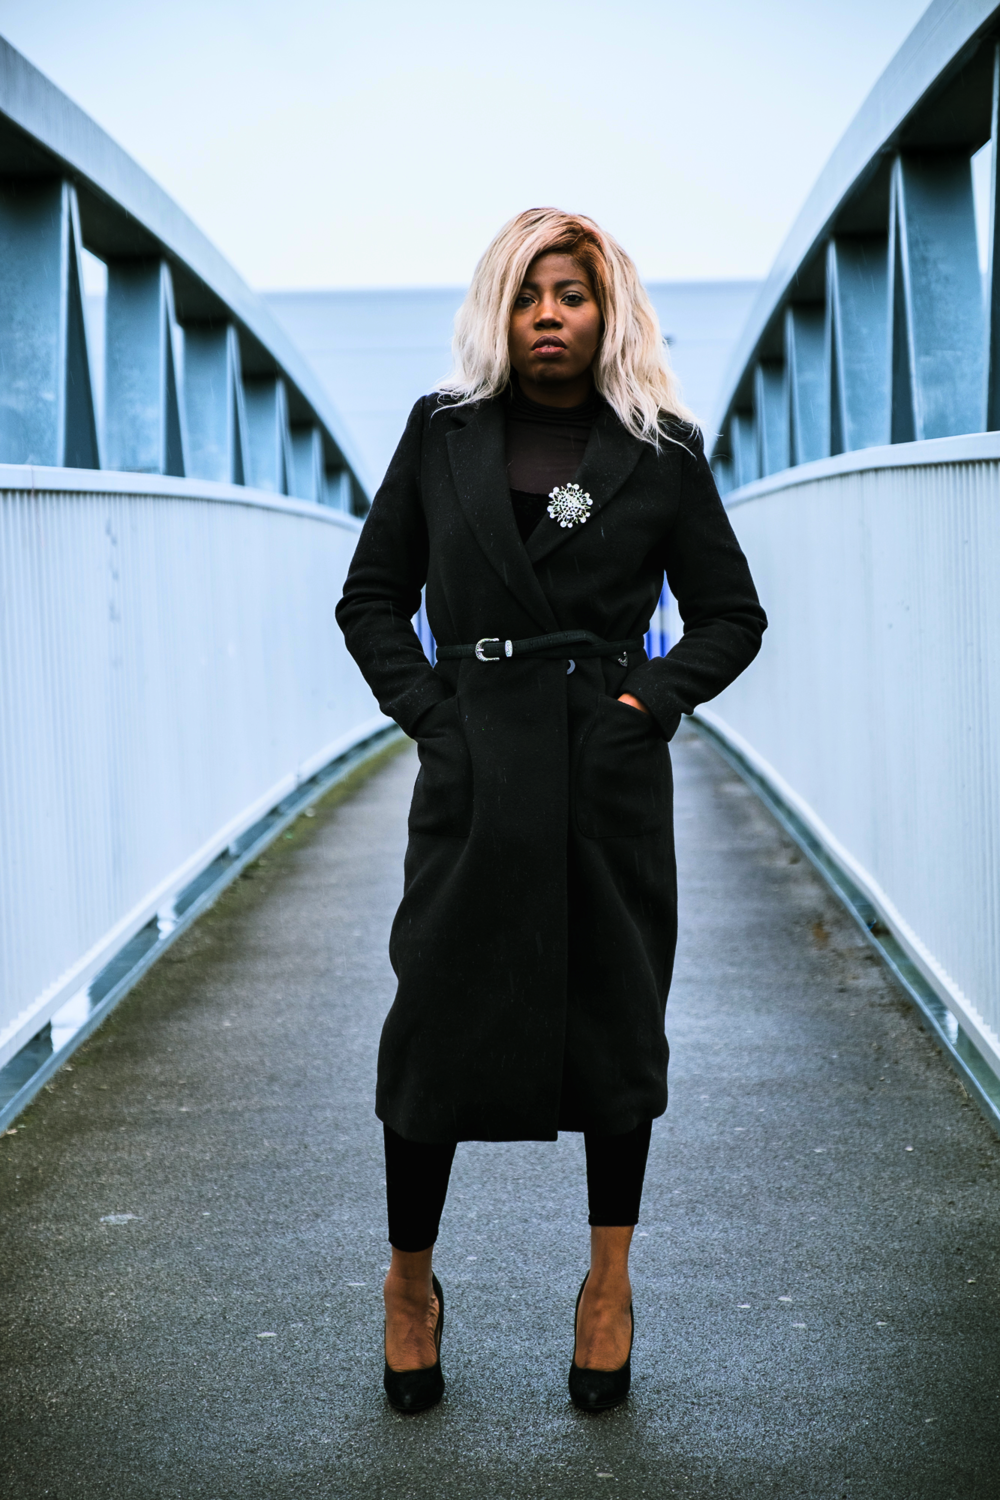 WINTER FASHION TRENDS 2018 |BOYFRIEND COAT